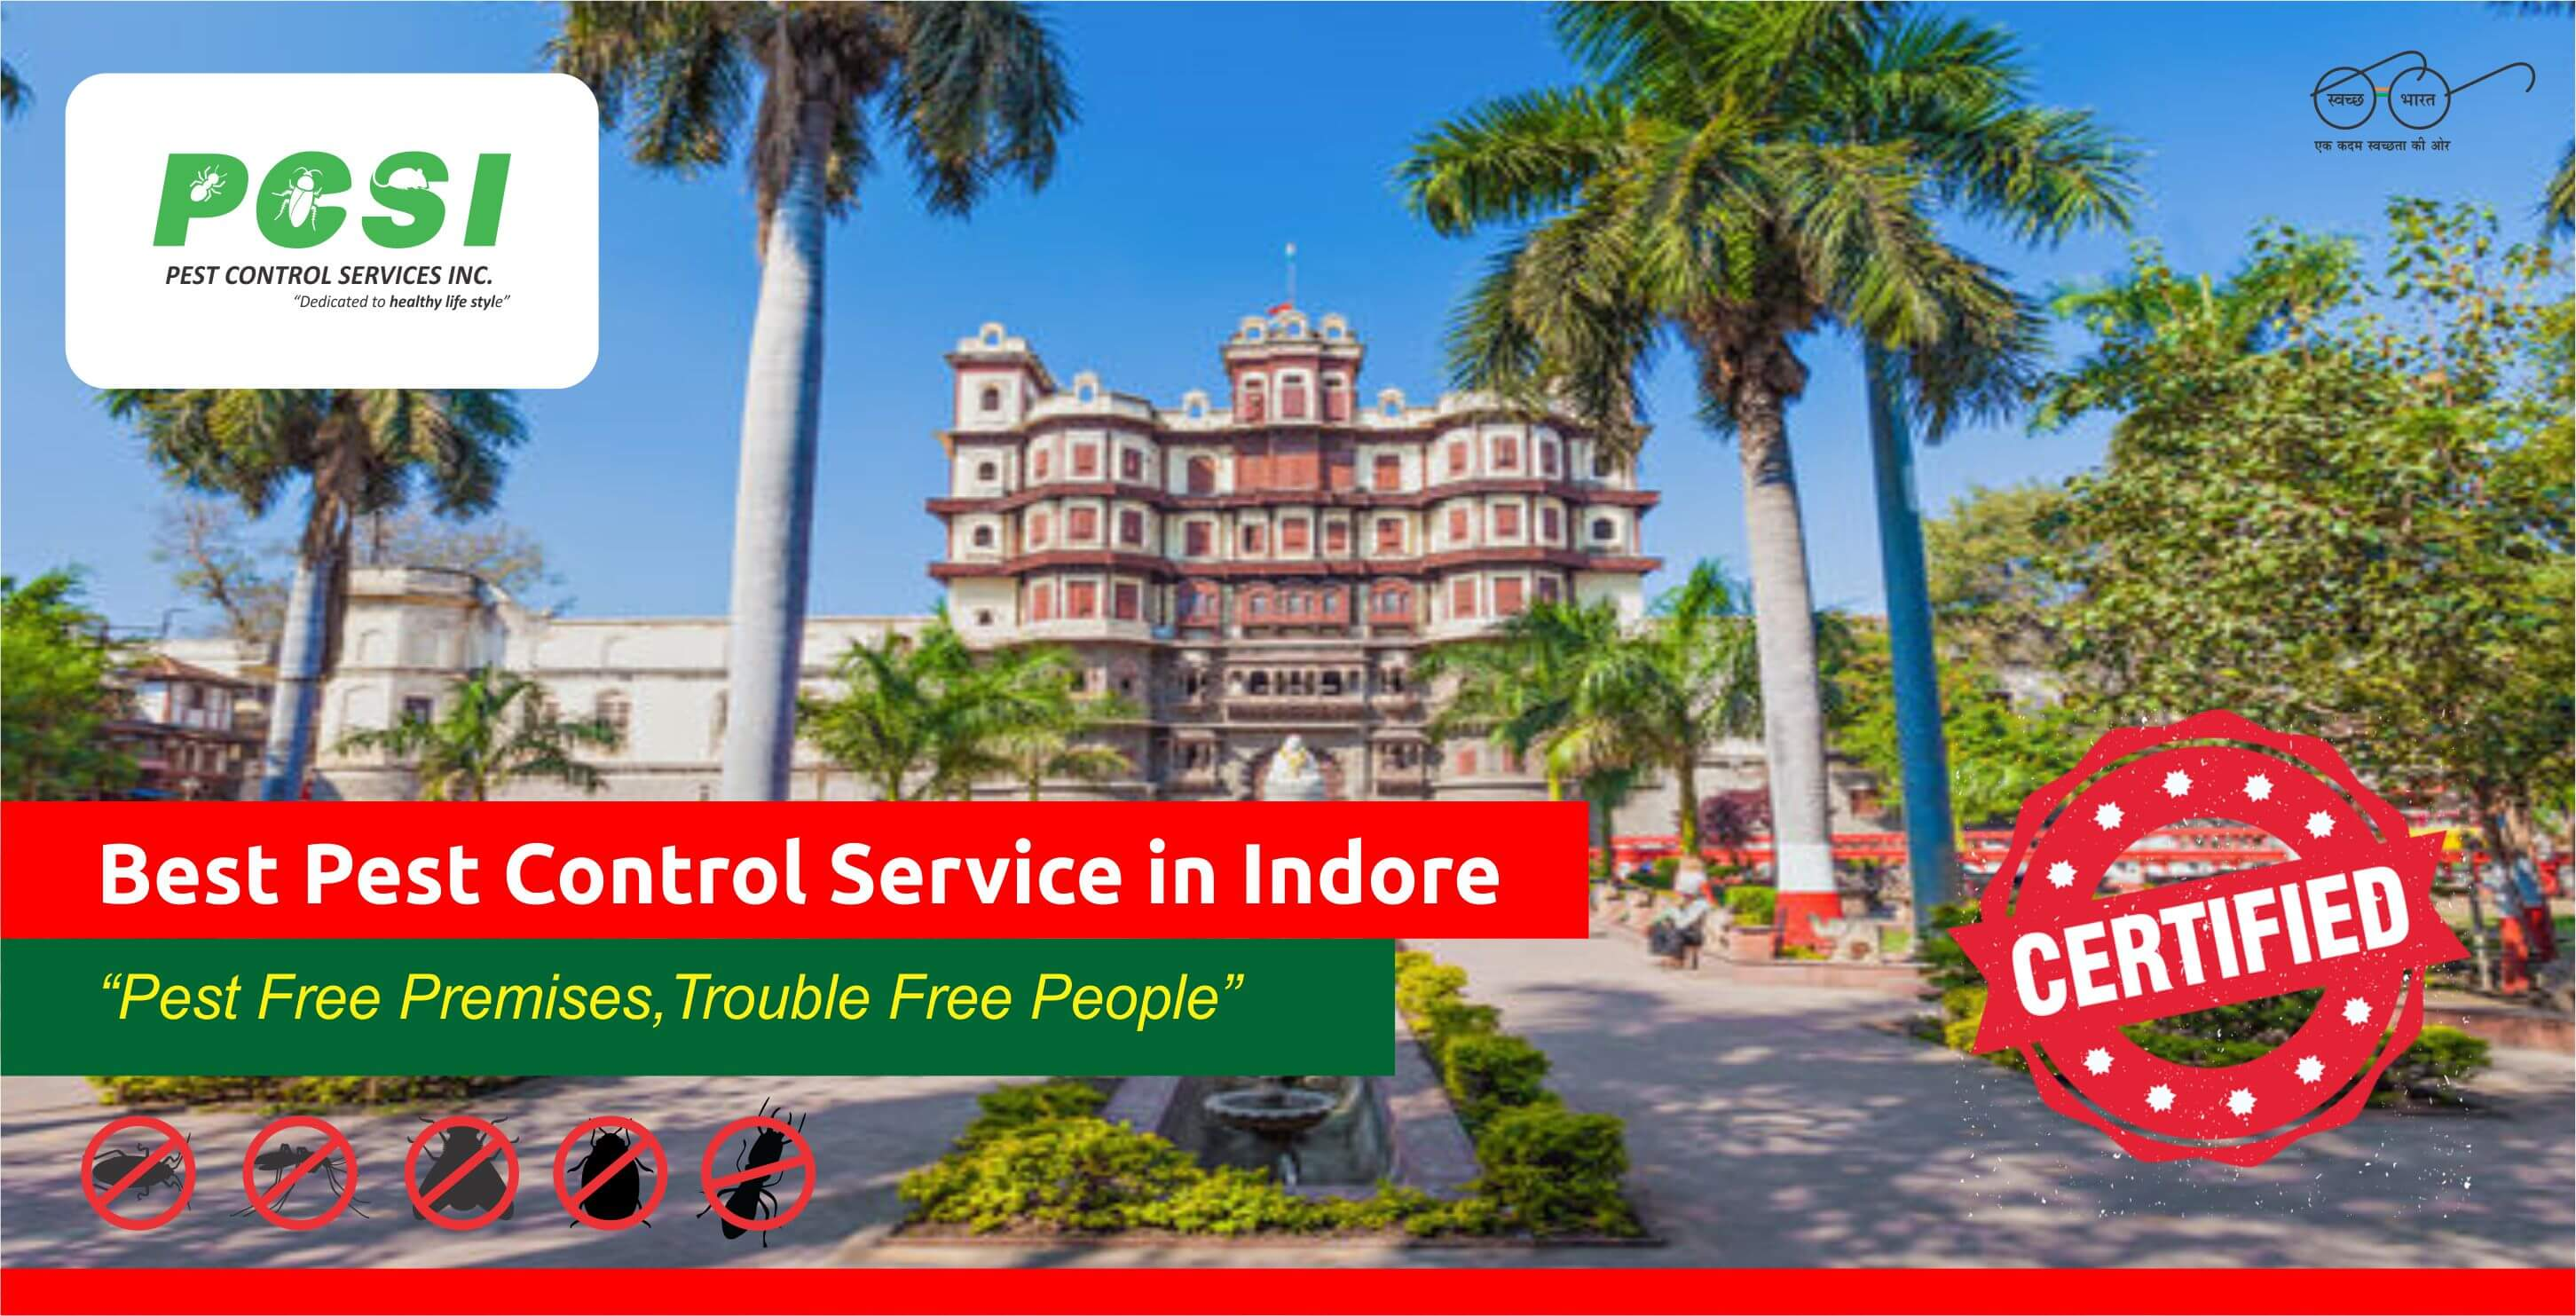 best pest control service in Indore